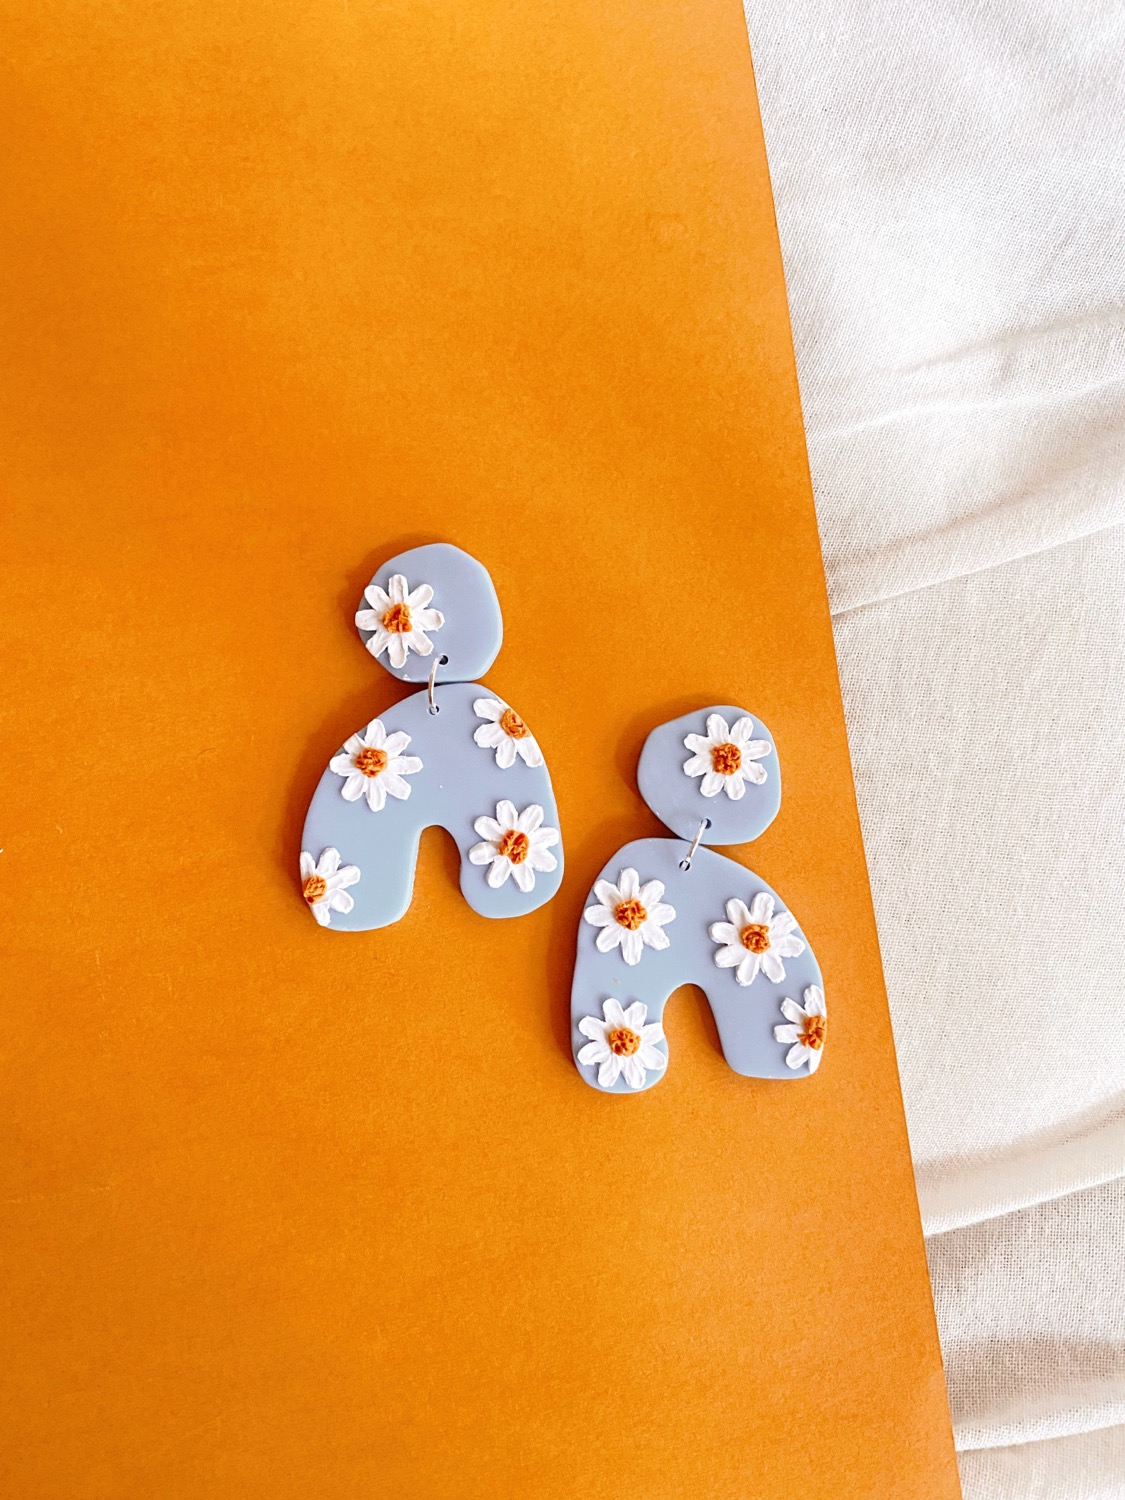 Polymer Clay Earrings, Limited Pre-order: Daisies - Pompeii Statement Earrings